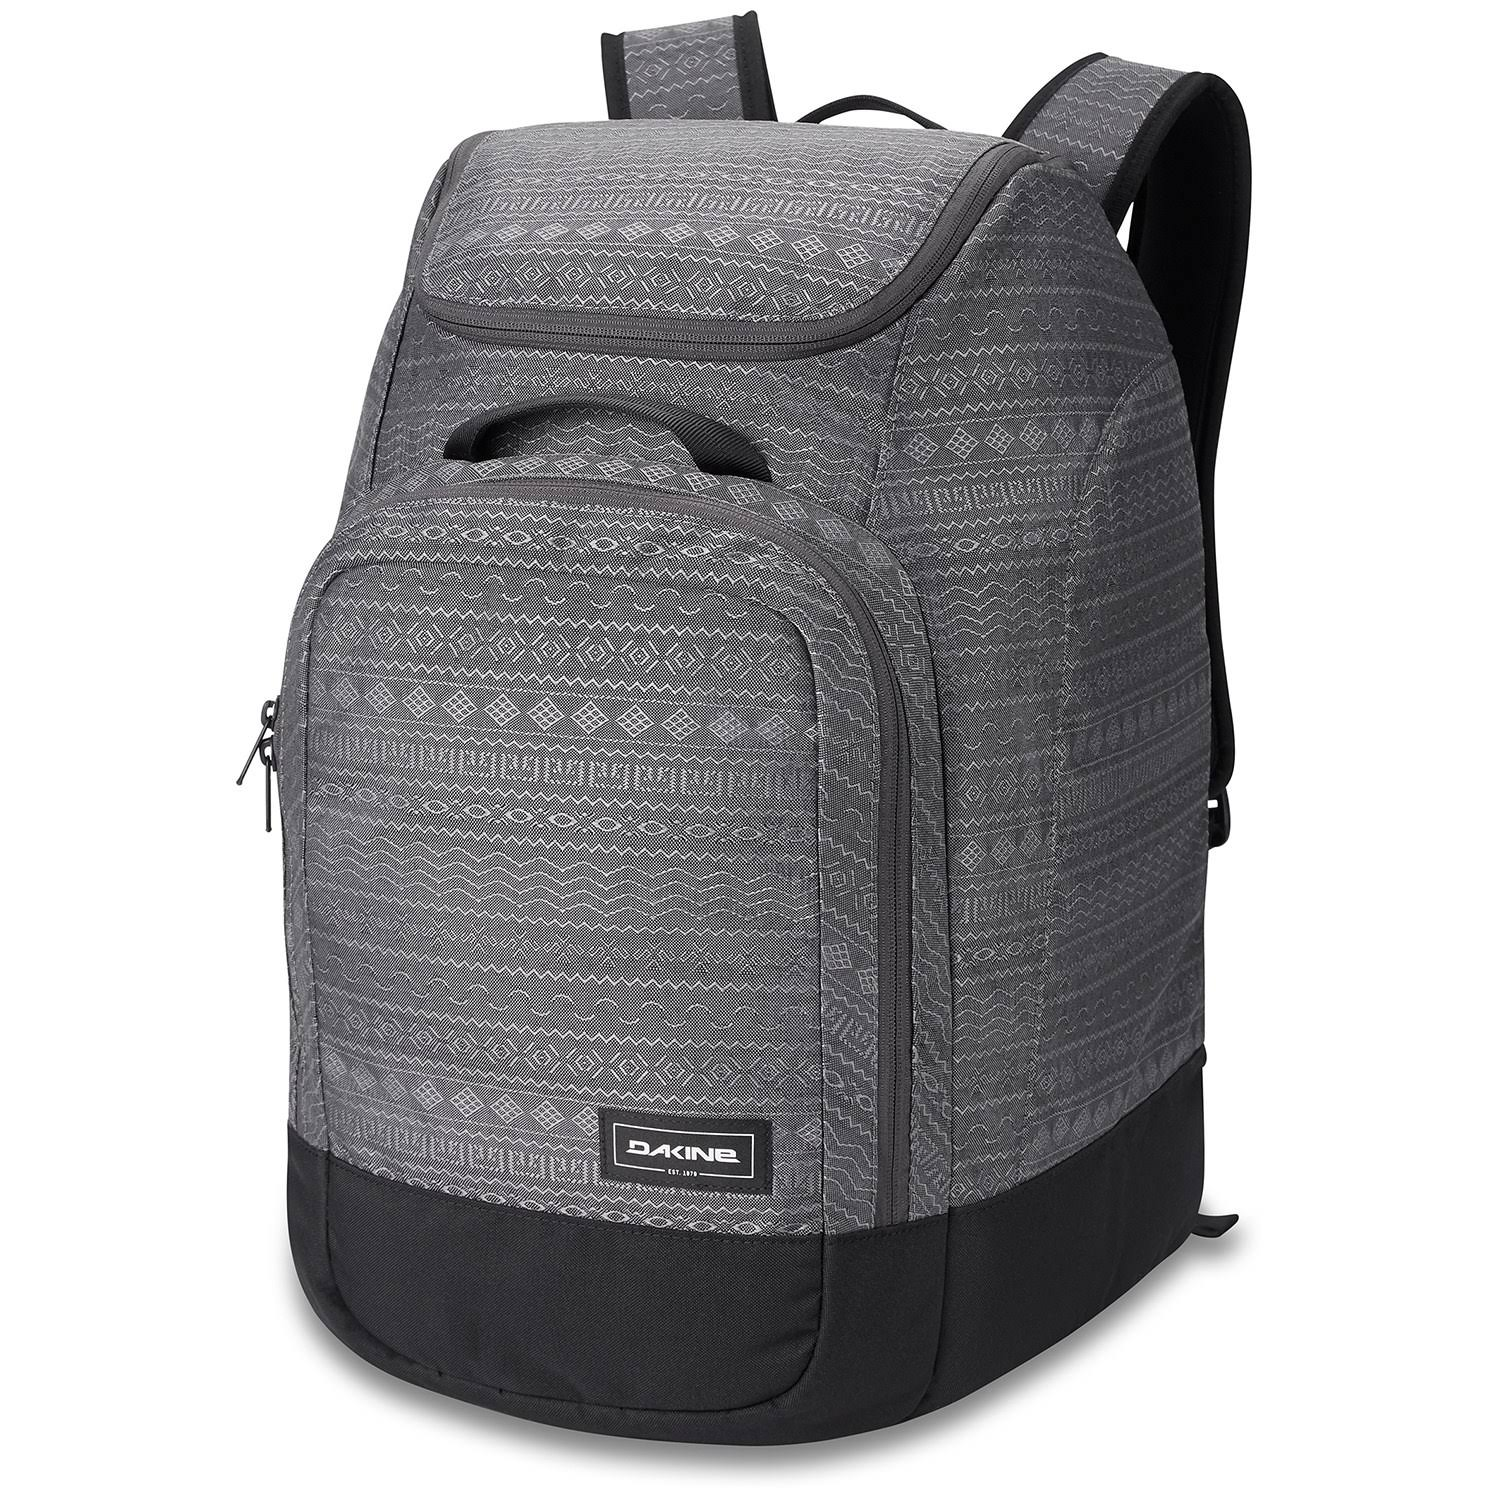 Dakine Boot Pack Ski/Snowboard Gear Bag - 50L